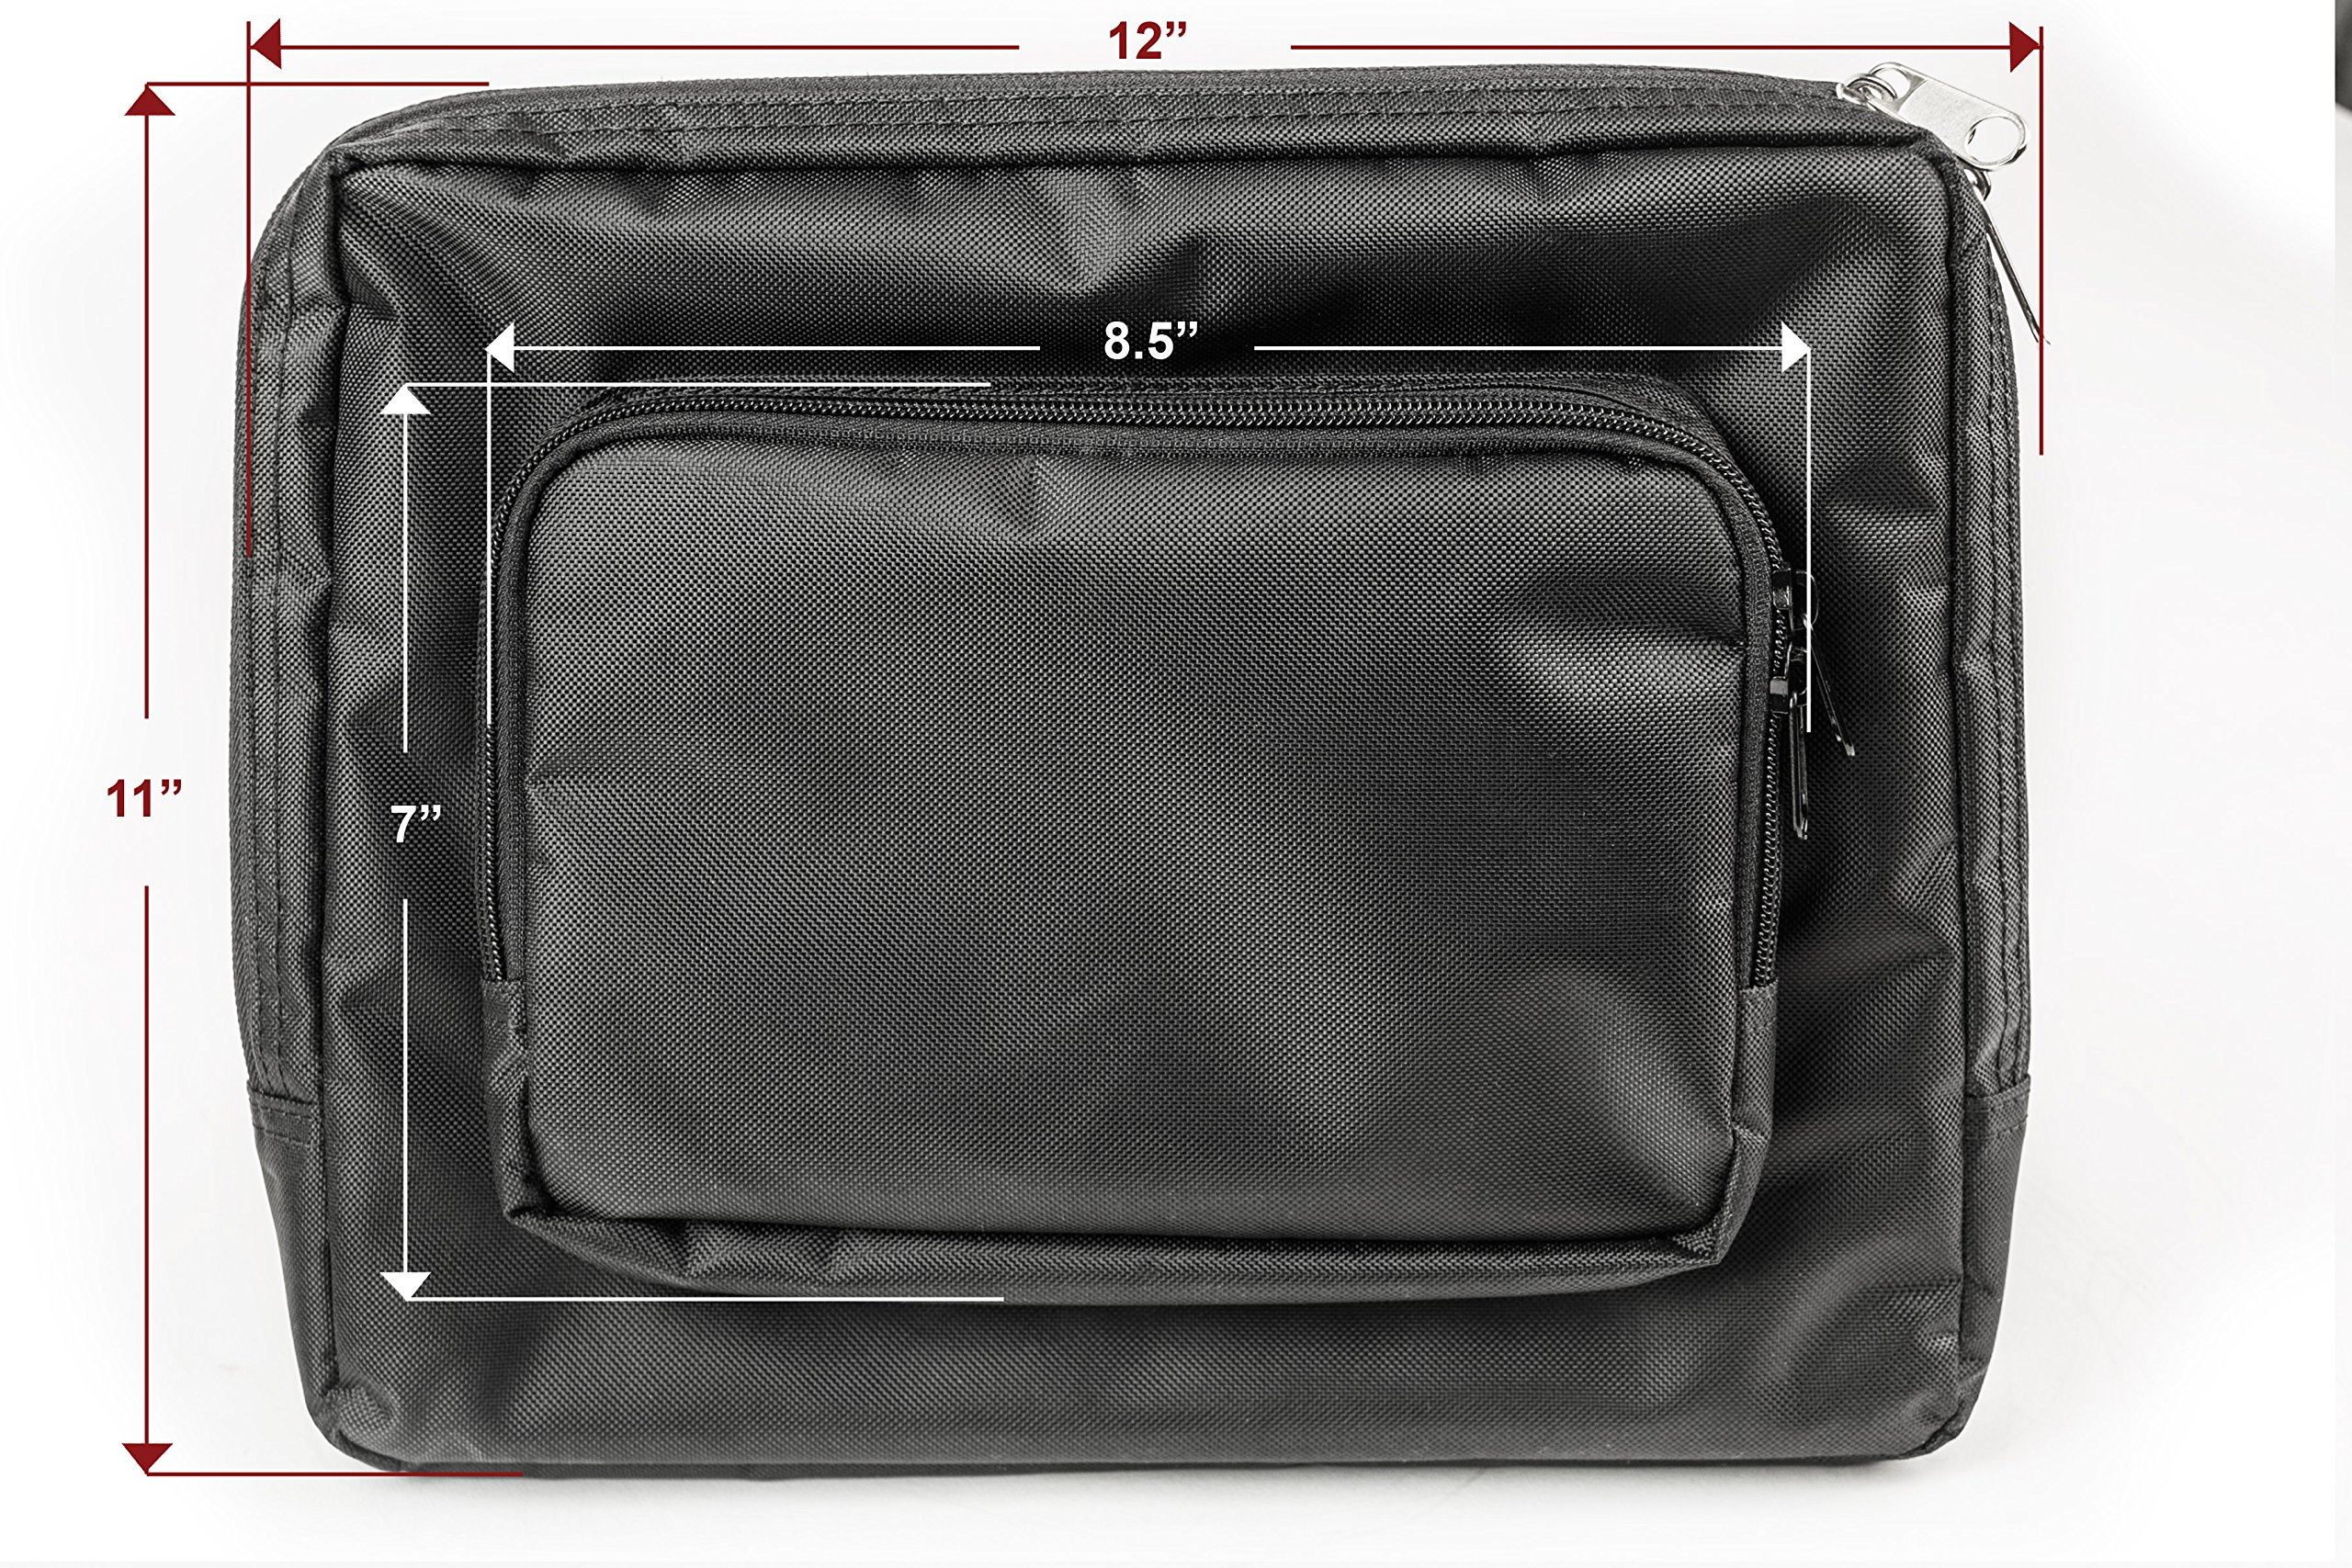 AutoExec AETote-09 Black/Grey File Tote with One Cooler and One Tablet Case by AutoExec (Image #20)